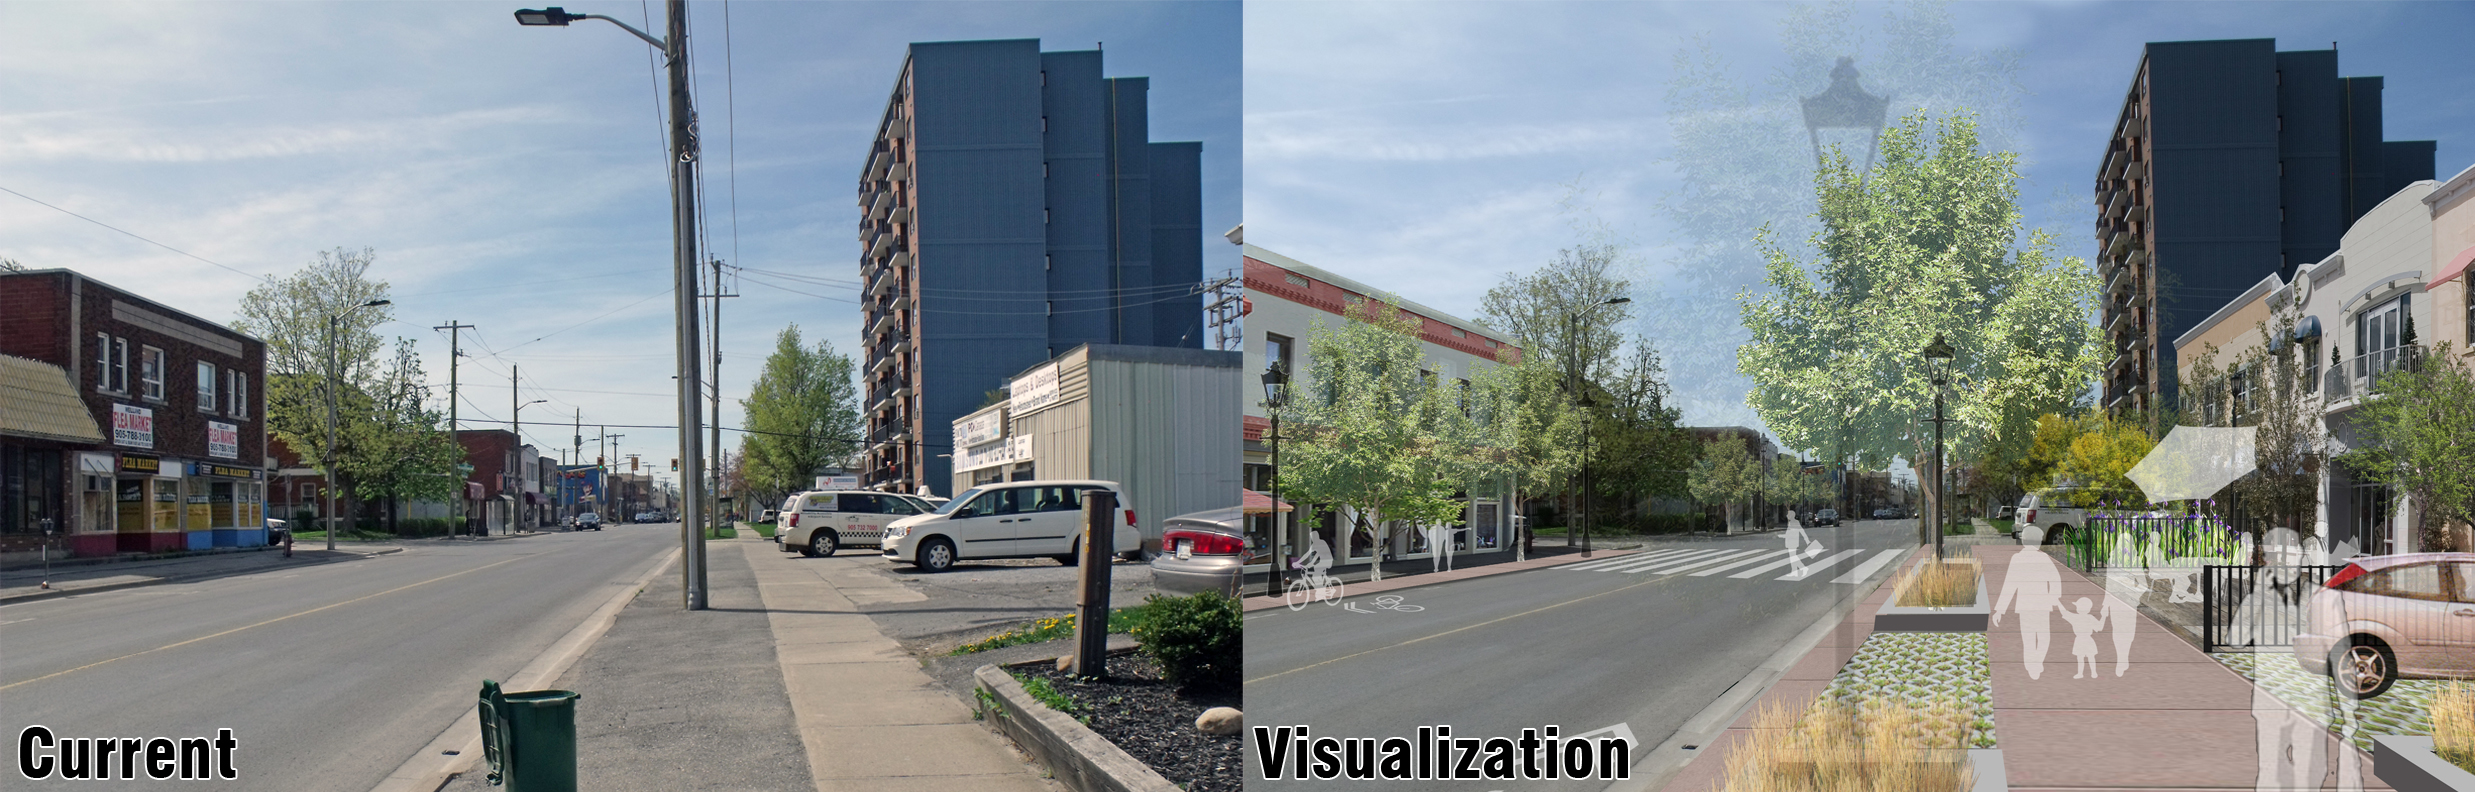 King Street current and visualized comparison